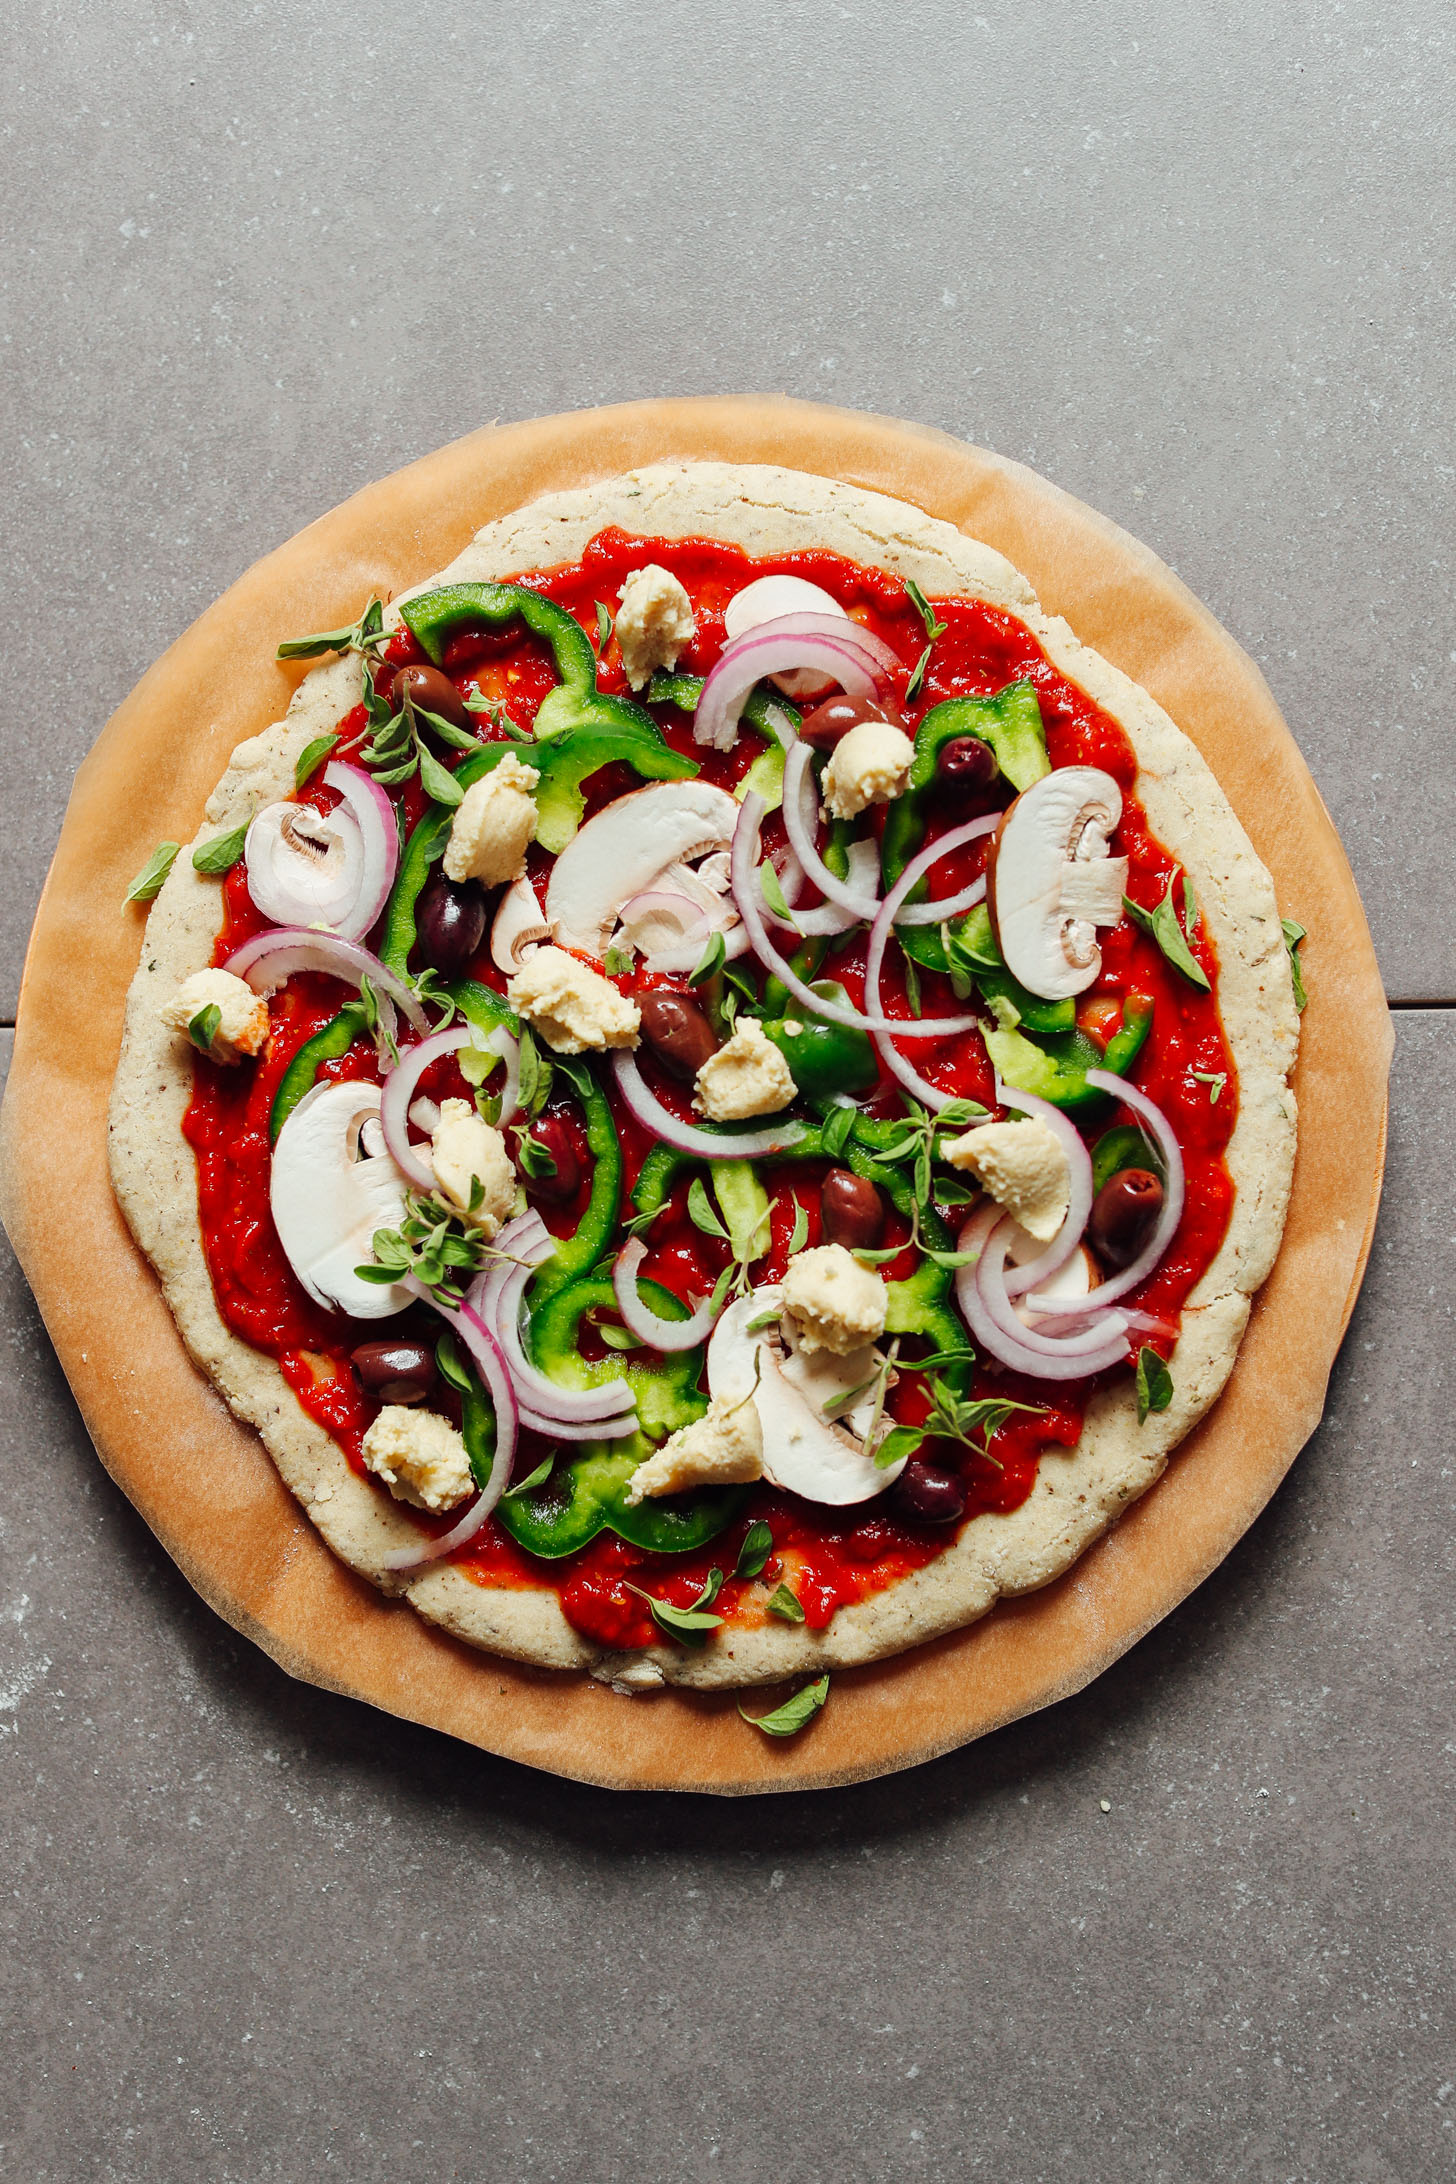 Gluten-Free Pizza Crust topped with marinara and fresh vegetables